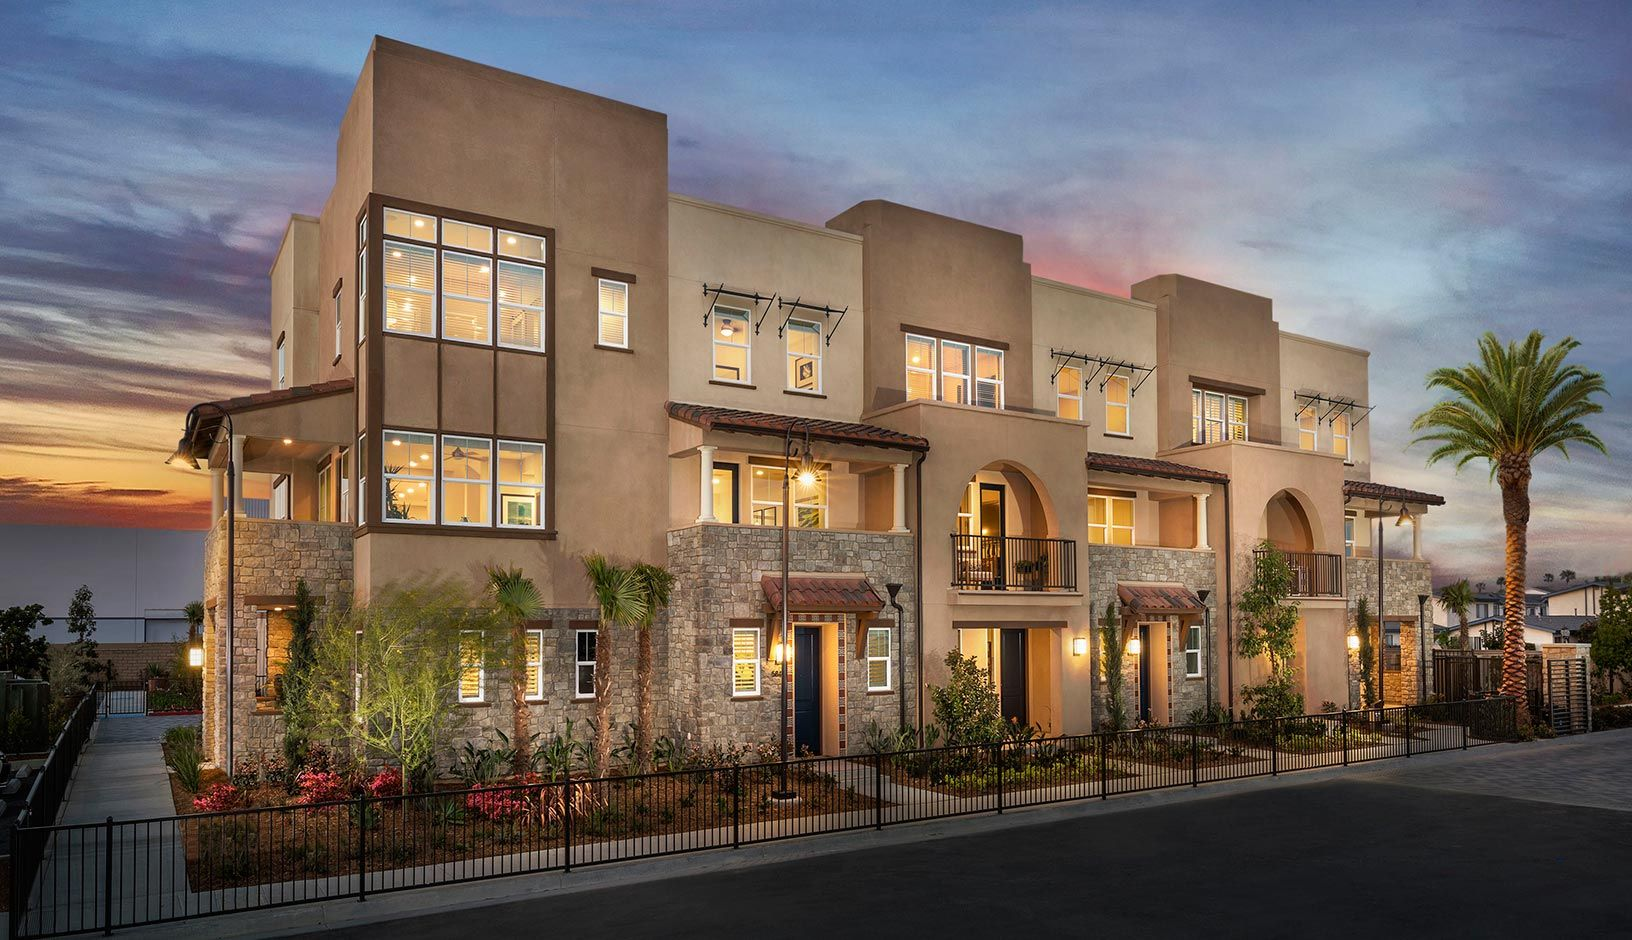 Single Family for Sale at Stratapointe - Residence 4 5856 Spring Street Buena Park, California 90620 United States